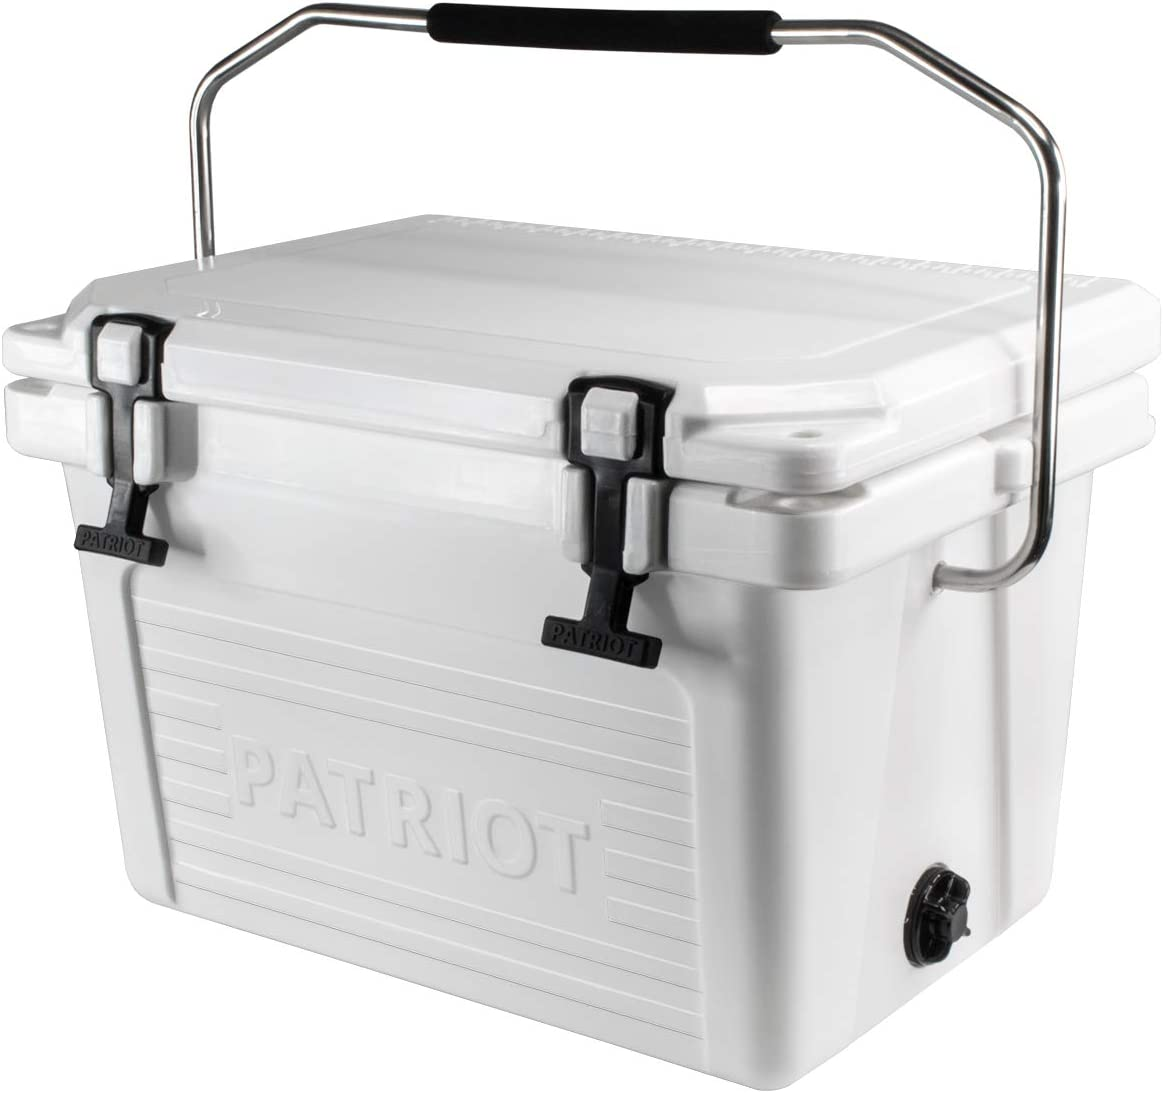 Patriot Heavy Duty 20QT Roto-Molded Cooler, with Steel Handle bar – Perfect for Fishing, Hunting, Construction Sites, Tailgating – Holds up to 24 Cans